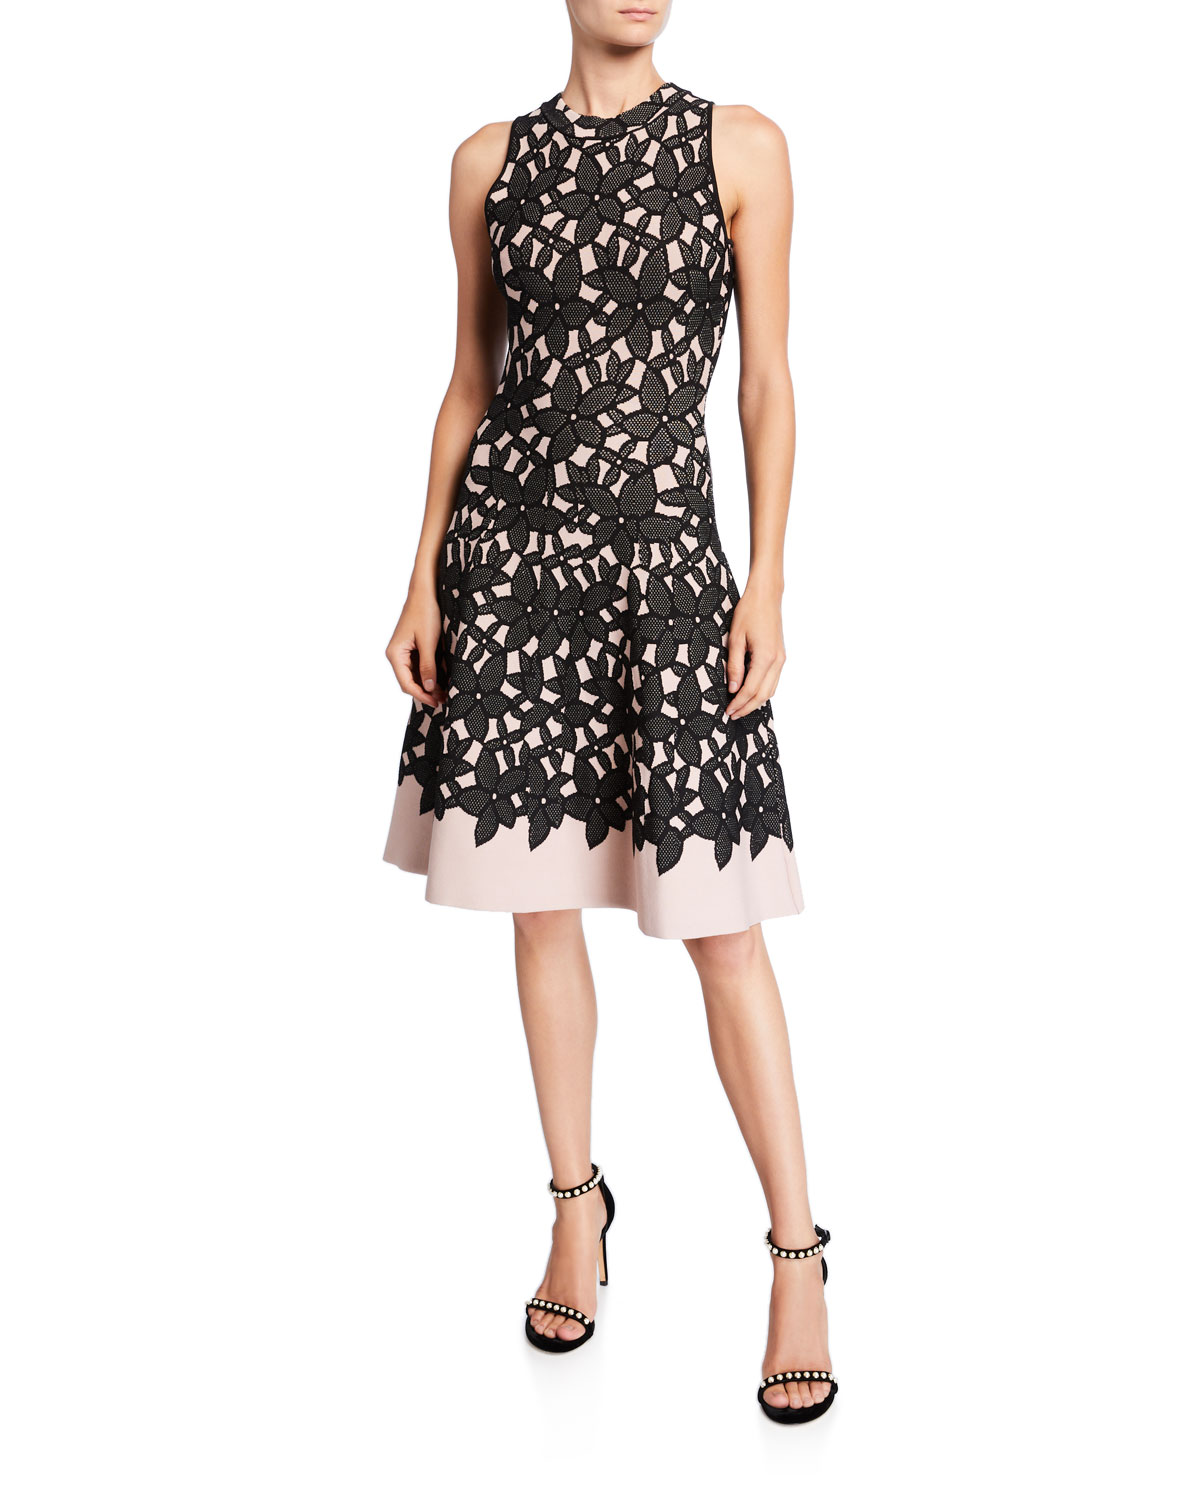 Milly Dresses SLEEVELESS FLORAL MESH JACQUARD FLOW DRESS